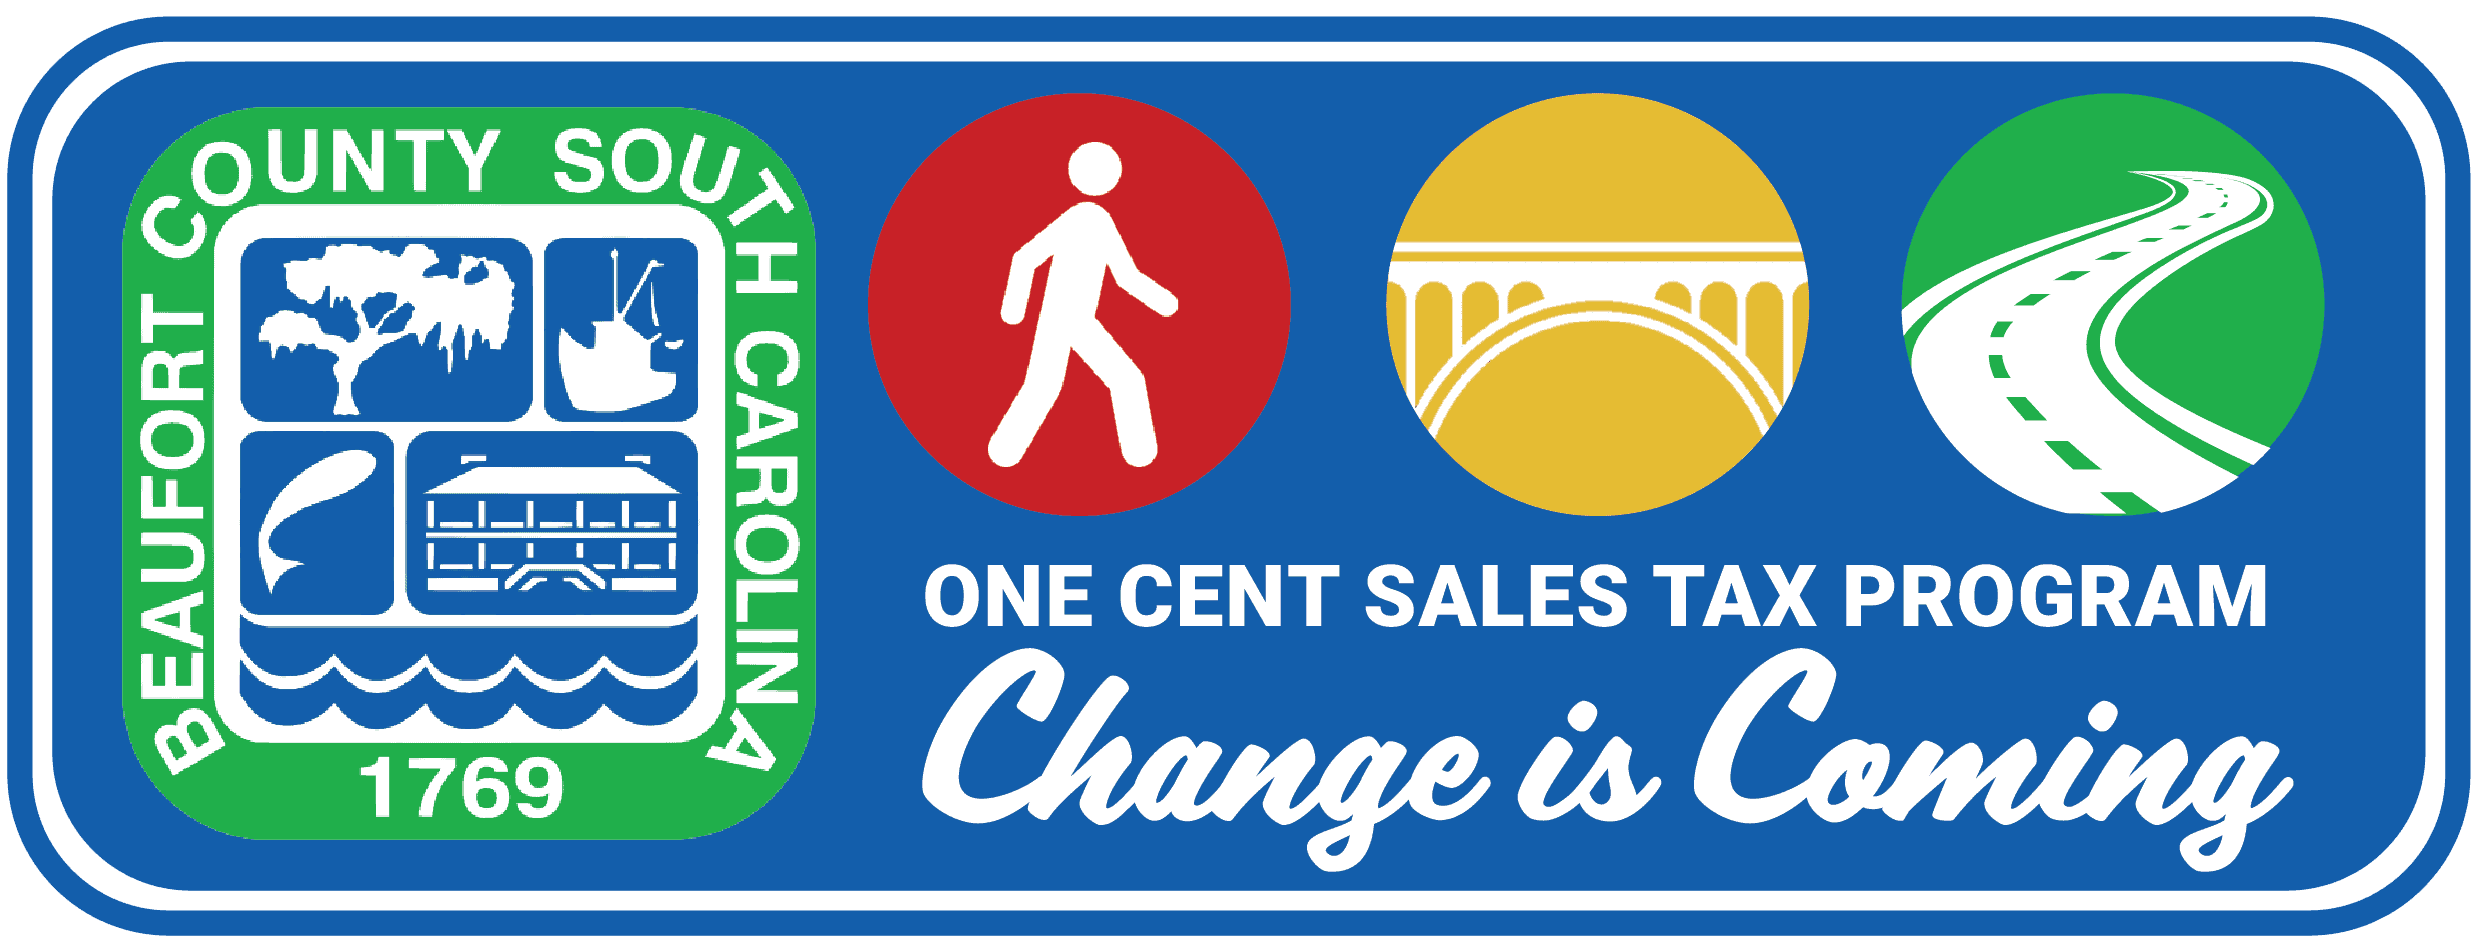 Beaufort County One Cent Sales Tax Program